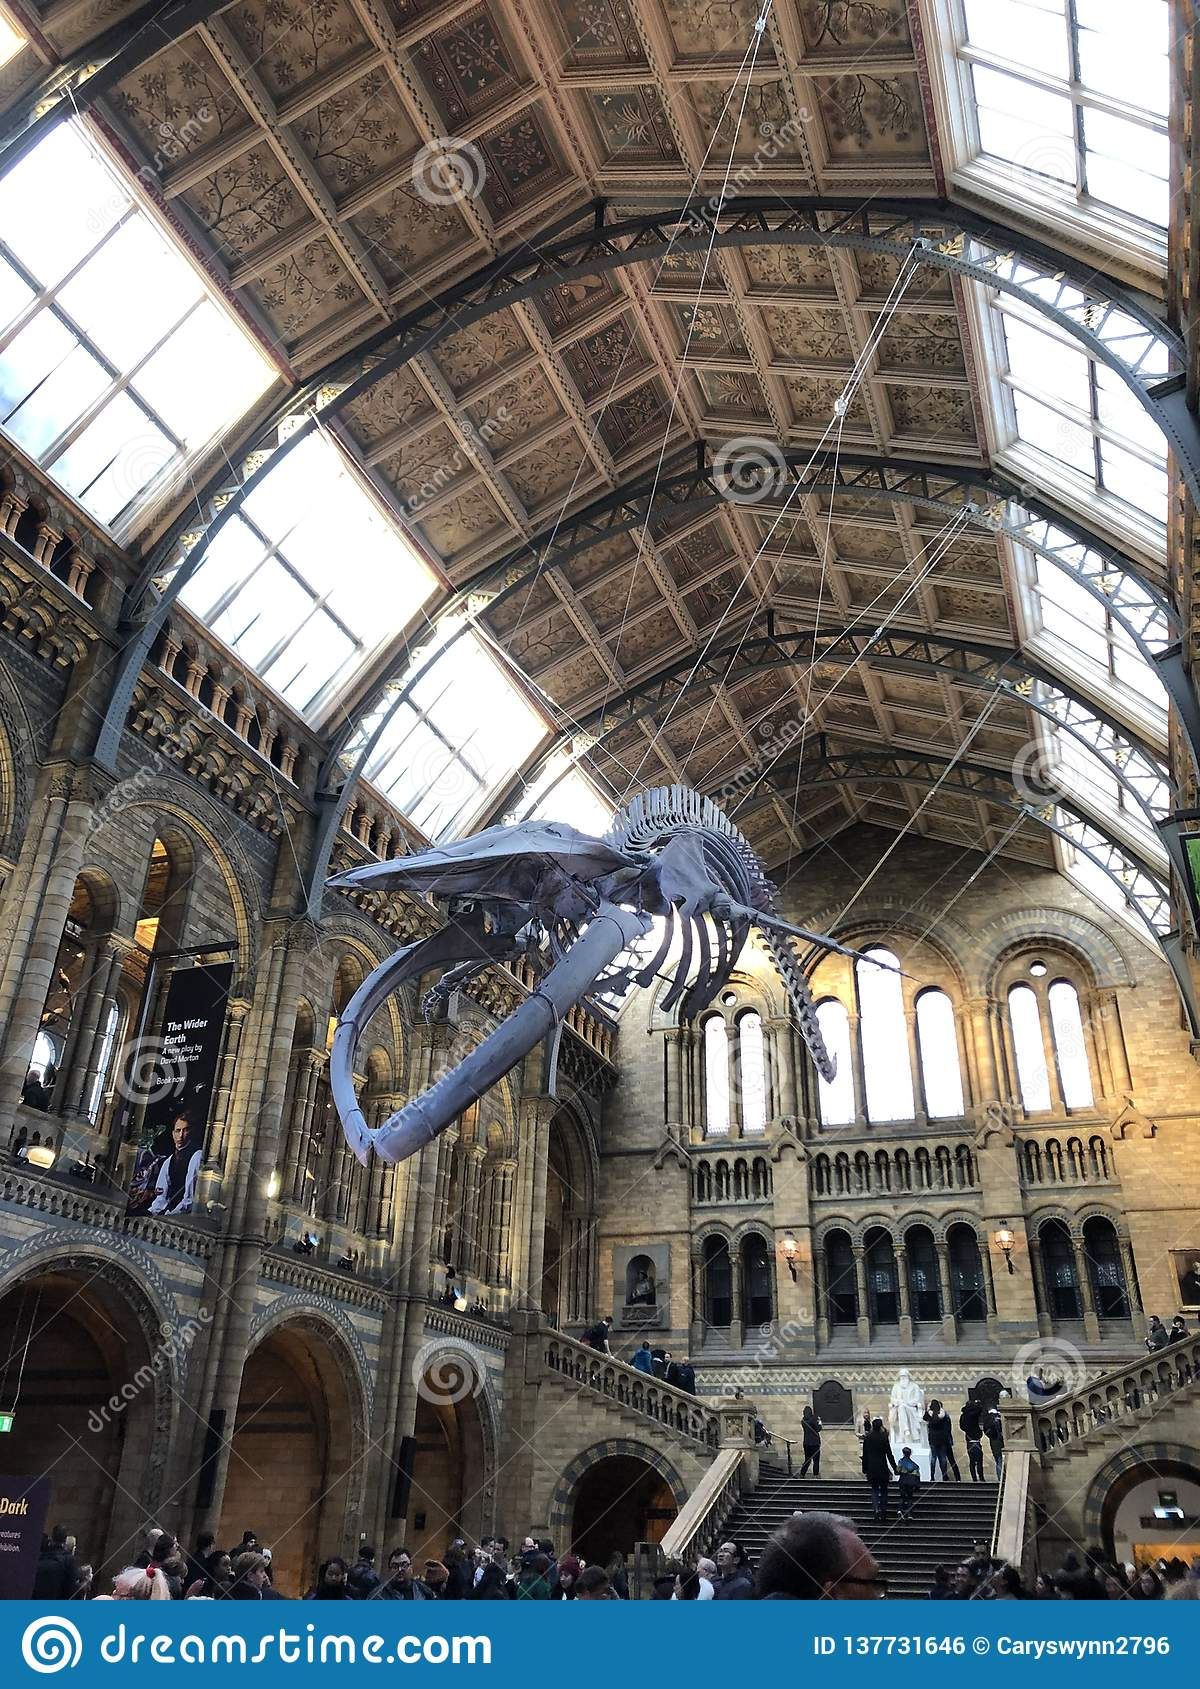 Whale at Natural History Museum